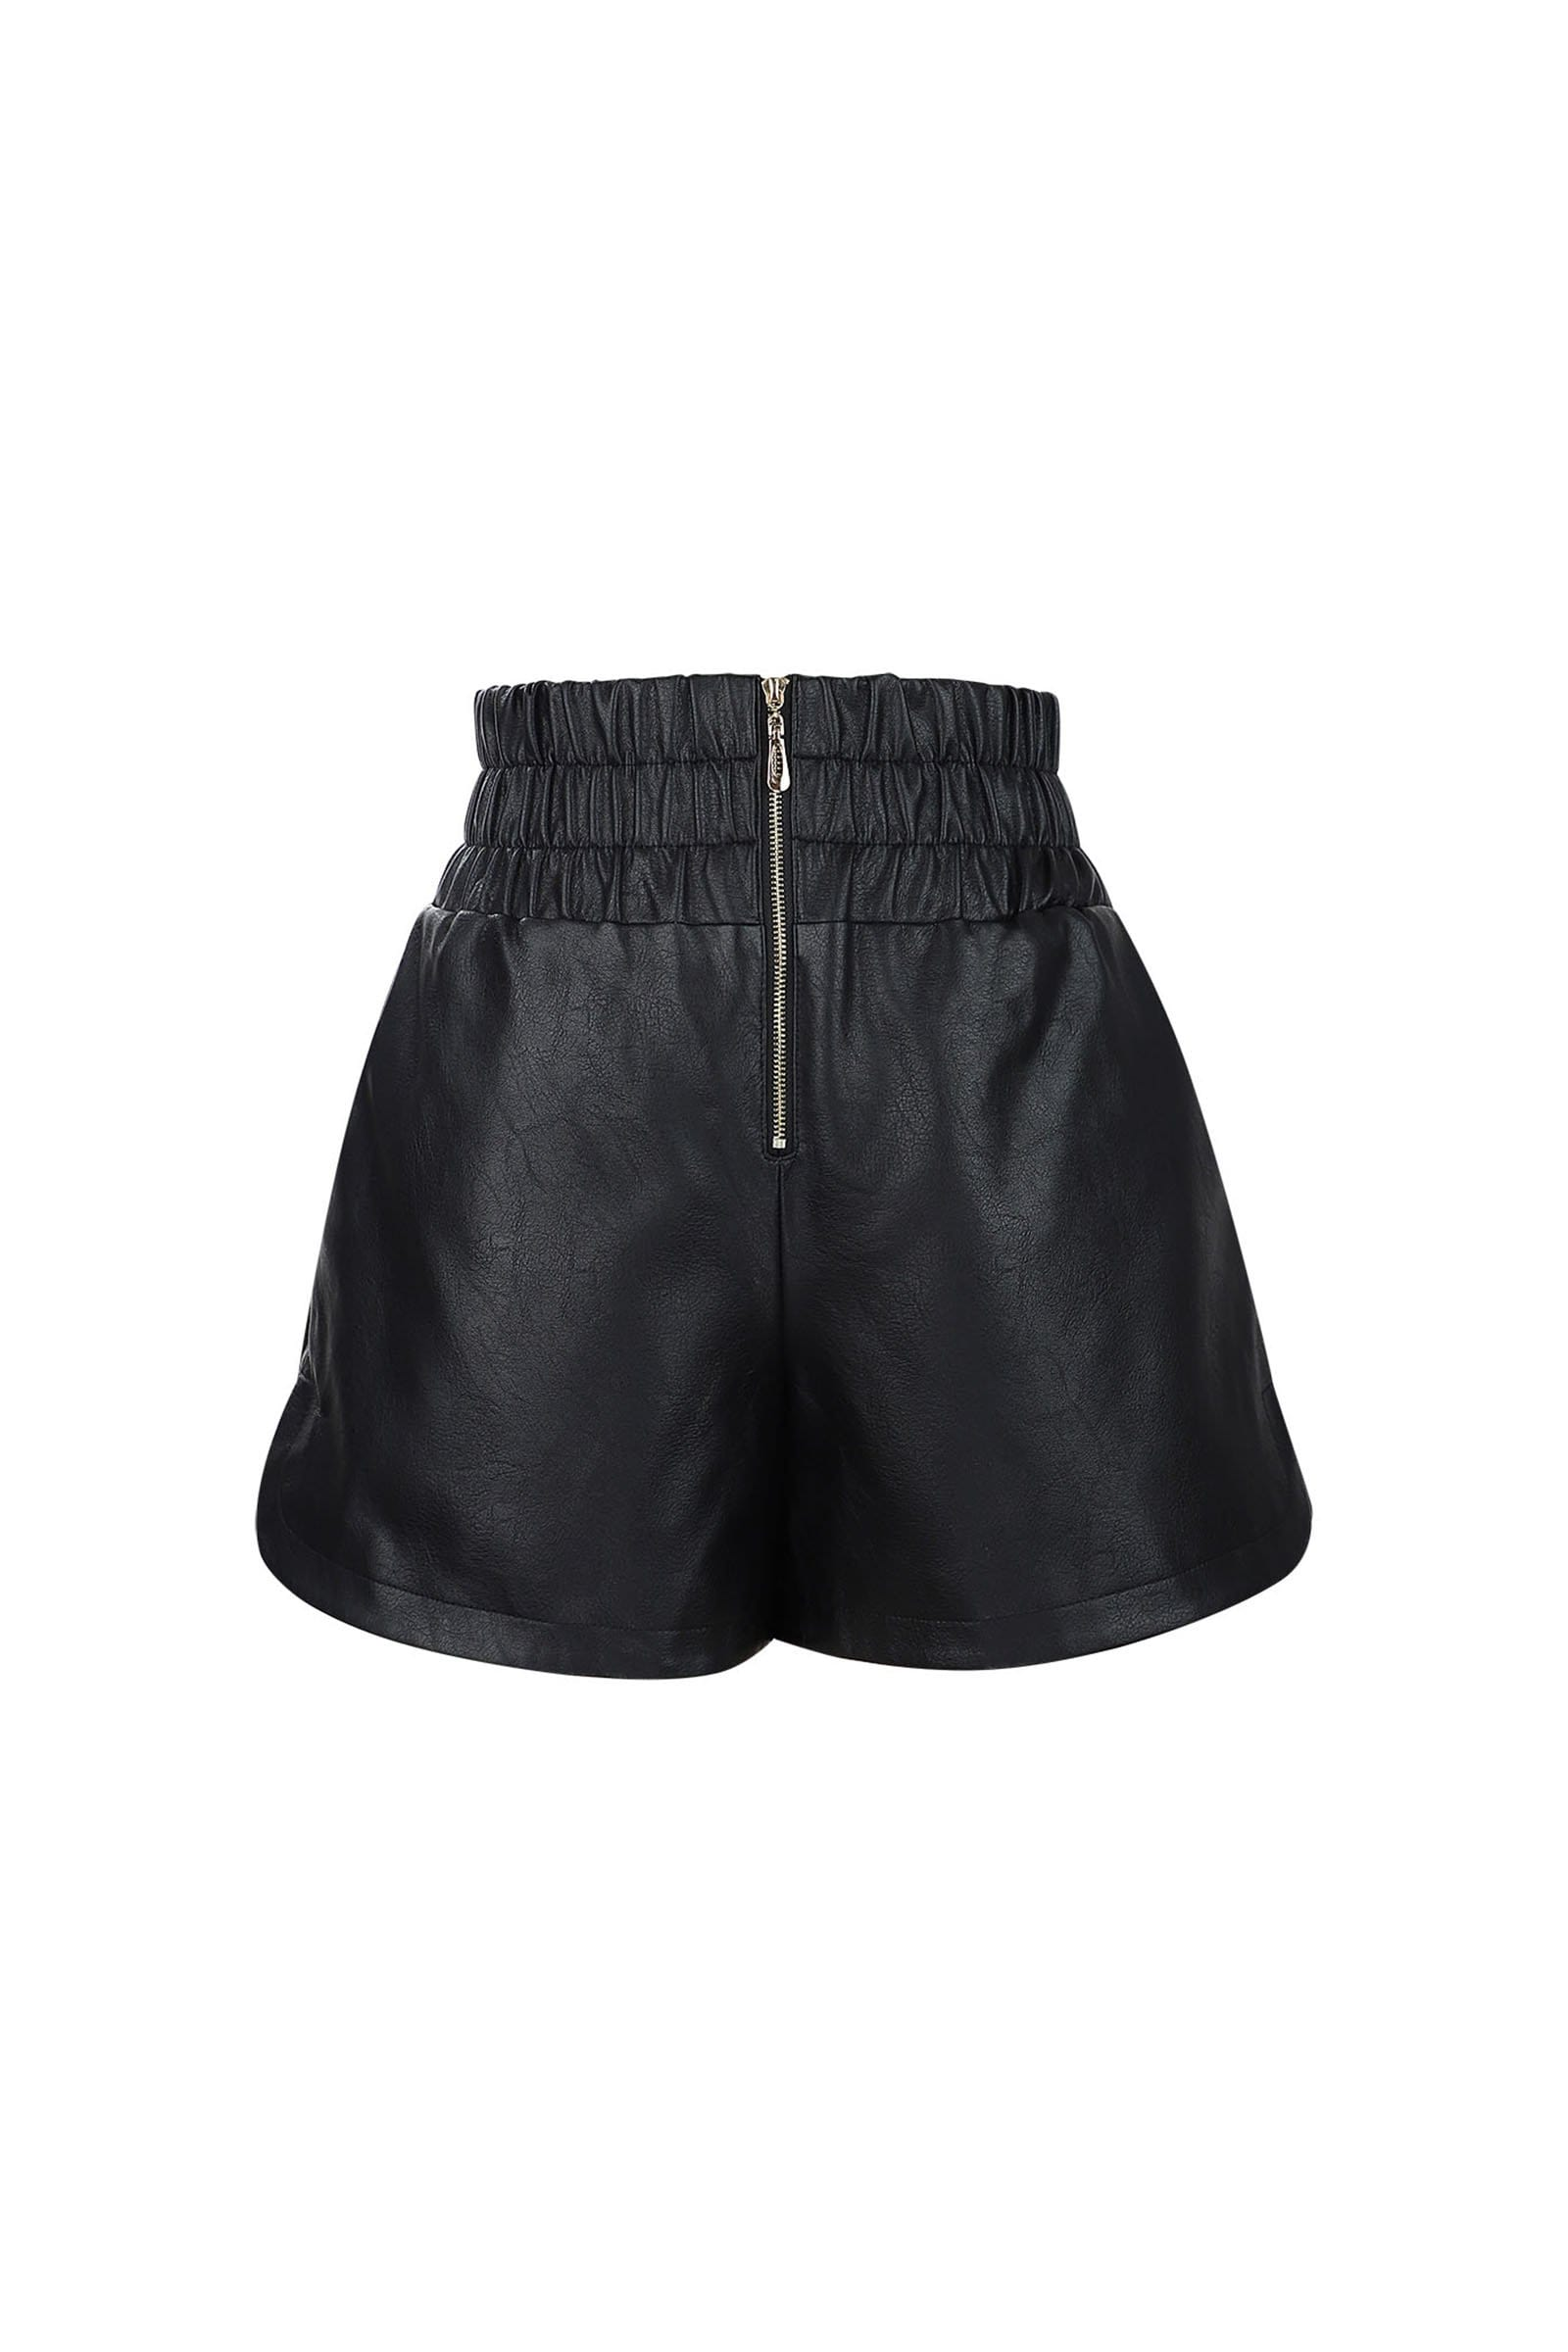 Glossy Black Leather Shorts